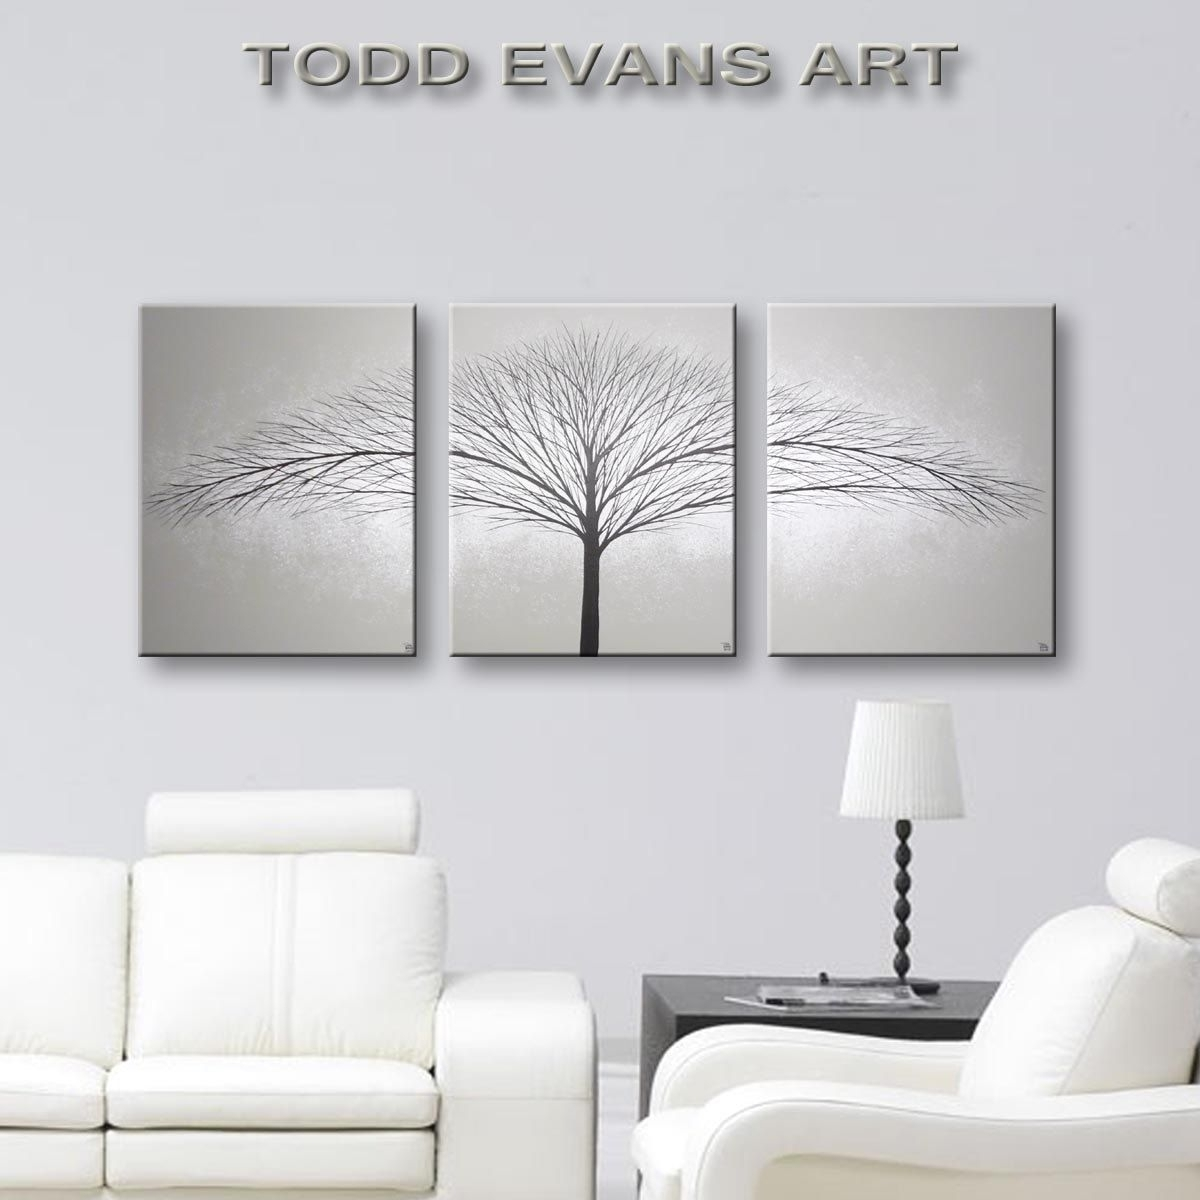 Sensational Grey Wall Decor Art Canvas Painting Piece Minimalist Inside Most Recently Released Grey Wall Art (Gallery 16 of 20)